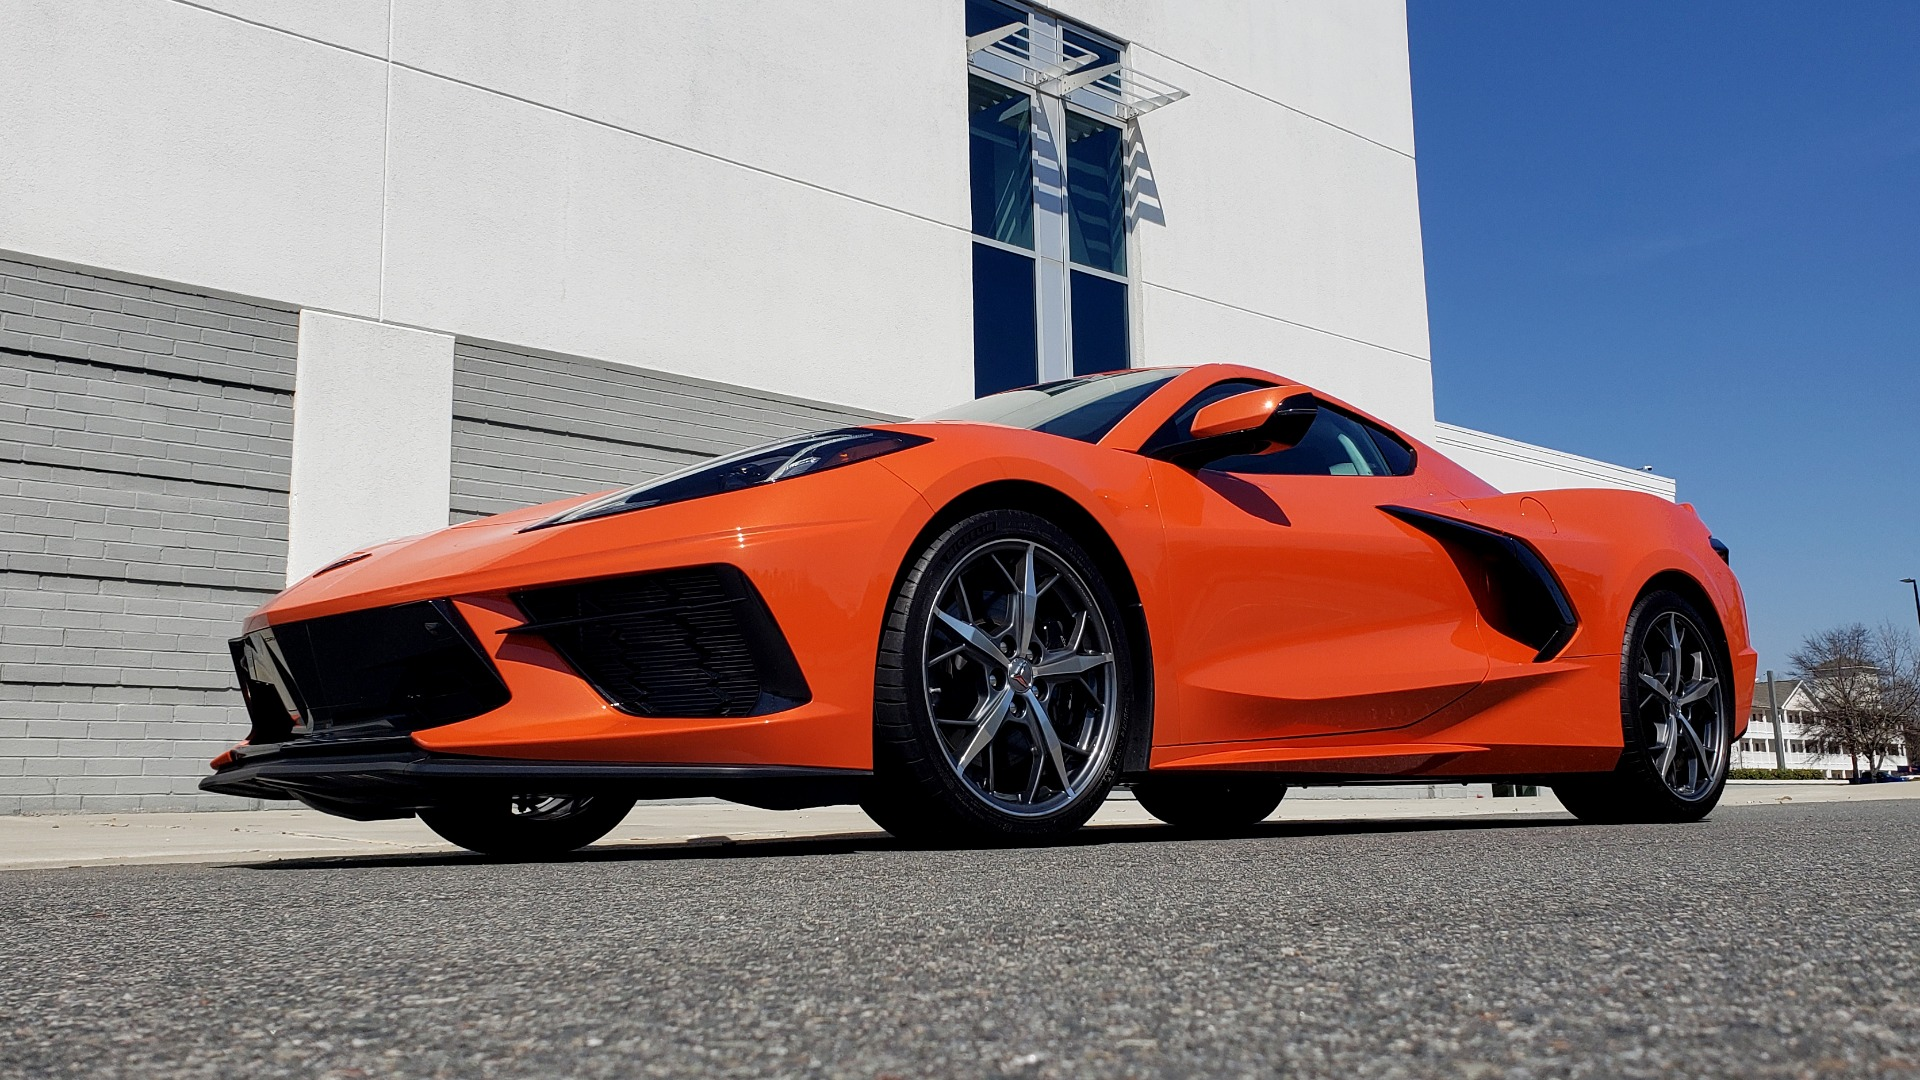 Used 2020 Chevrolet CORVETTE C8 STINGRAY 3LT COUPE / NAV / BOSE / CAMERA / LIKE NEW for sale Sold at Formula Imports in Charlotte NC 28227 3